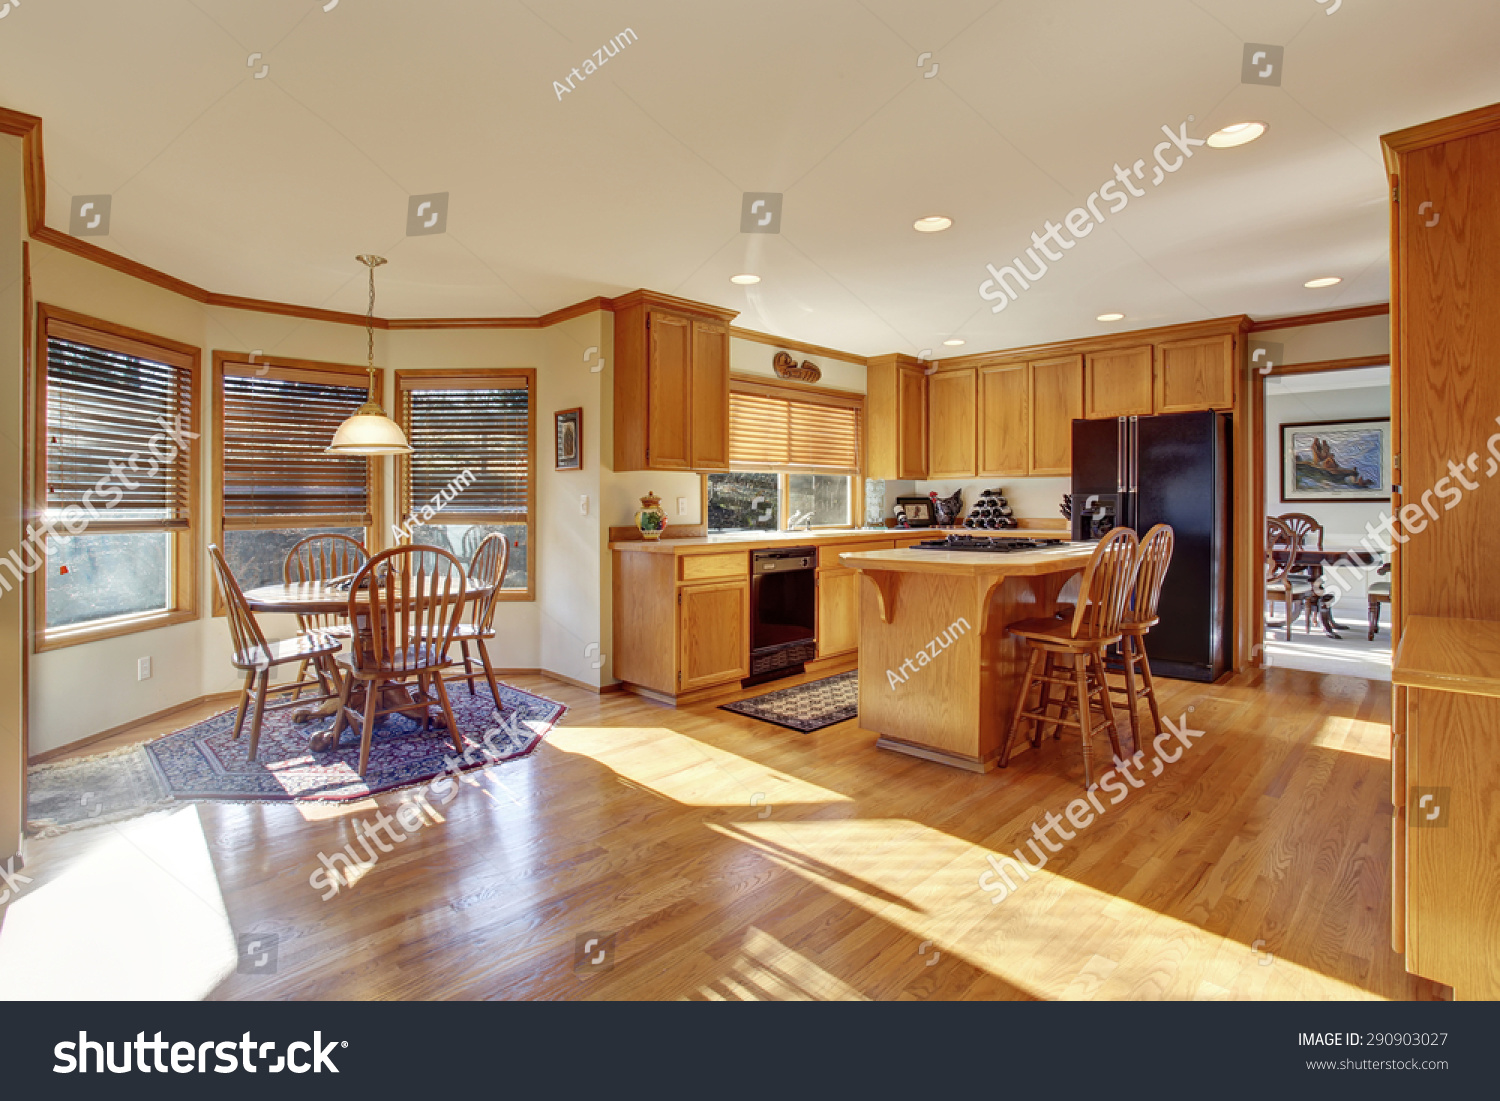 Classic Kitchen Lighting Classic Kitchen With Hardwood Floor Great Lighting And An Island